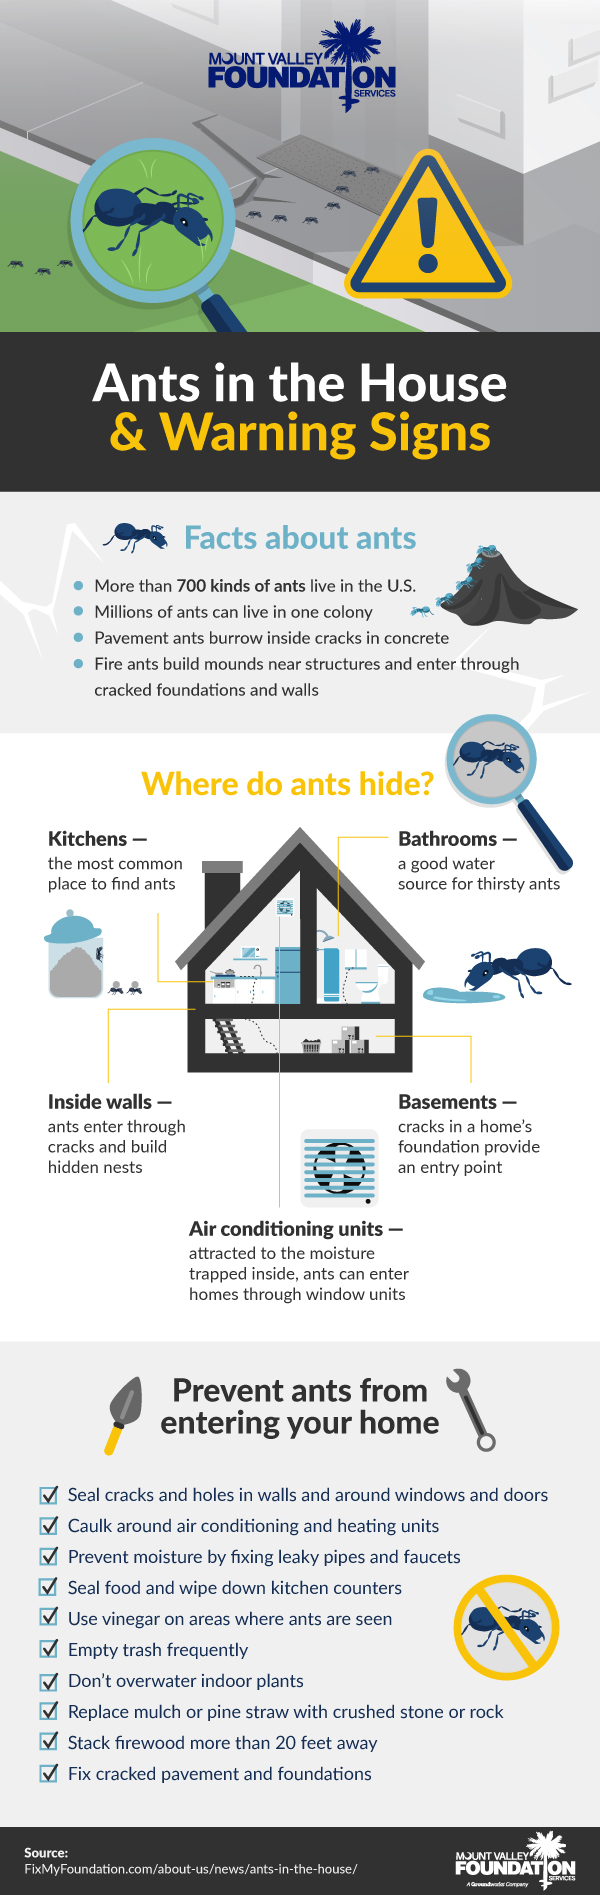 Ants in the House & Warning Signs